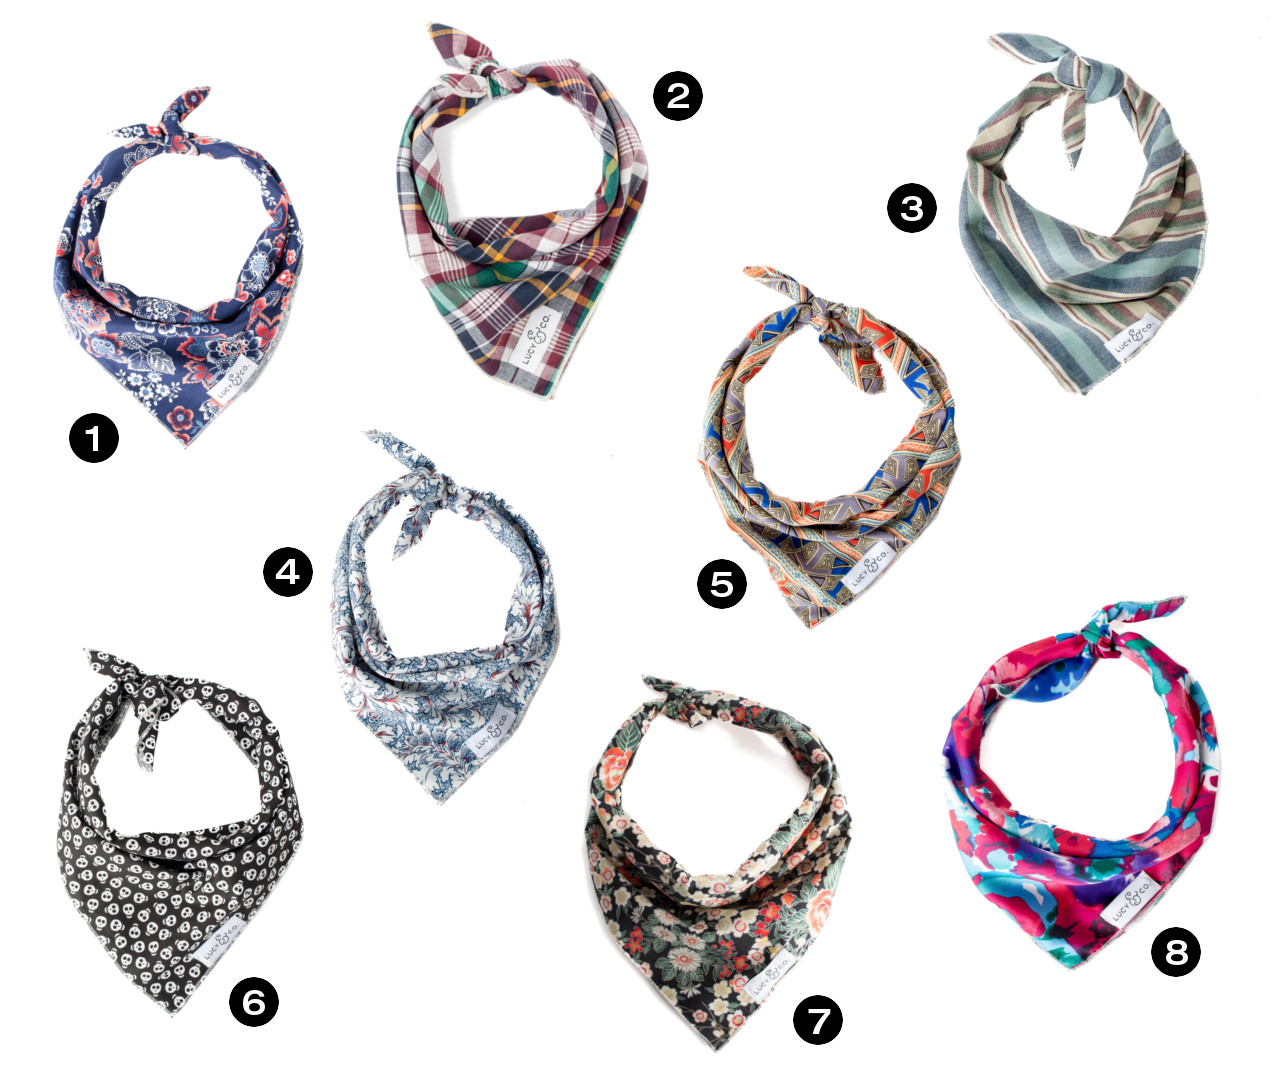 Dog Milk Holiday Gift Guide: Stylish & Festive Bandanas from Lucy & Co.